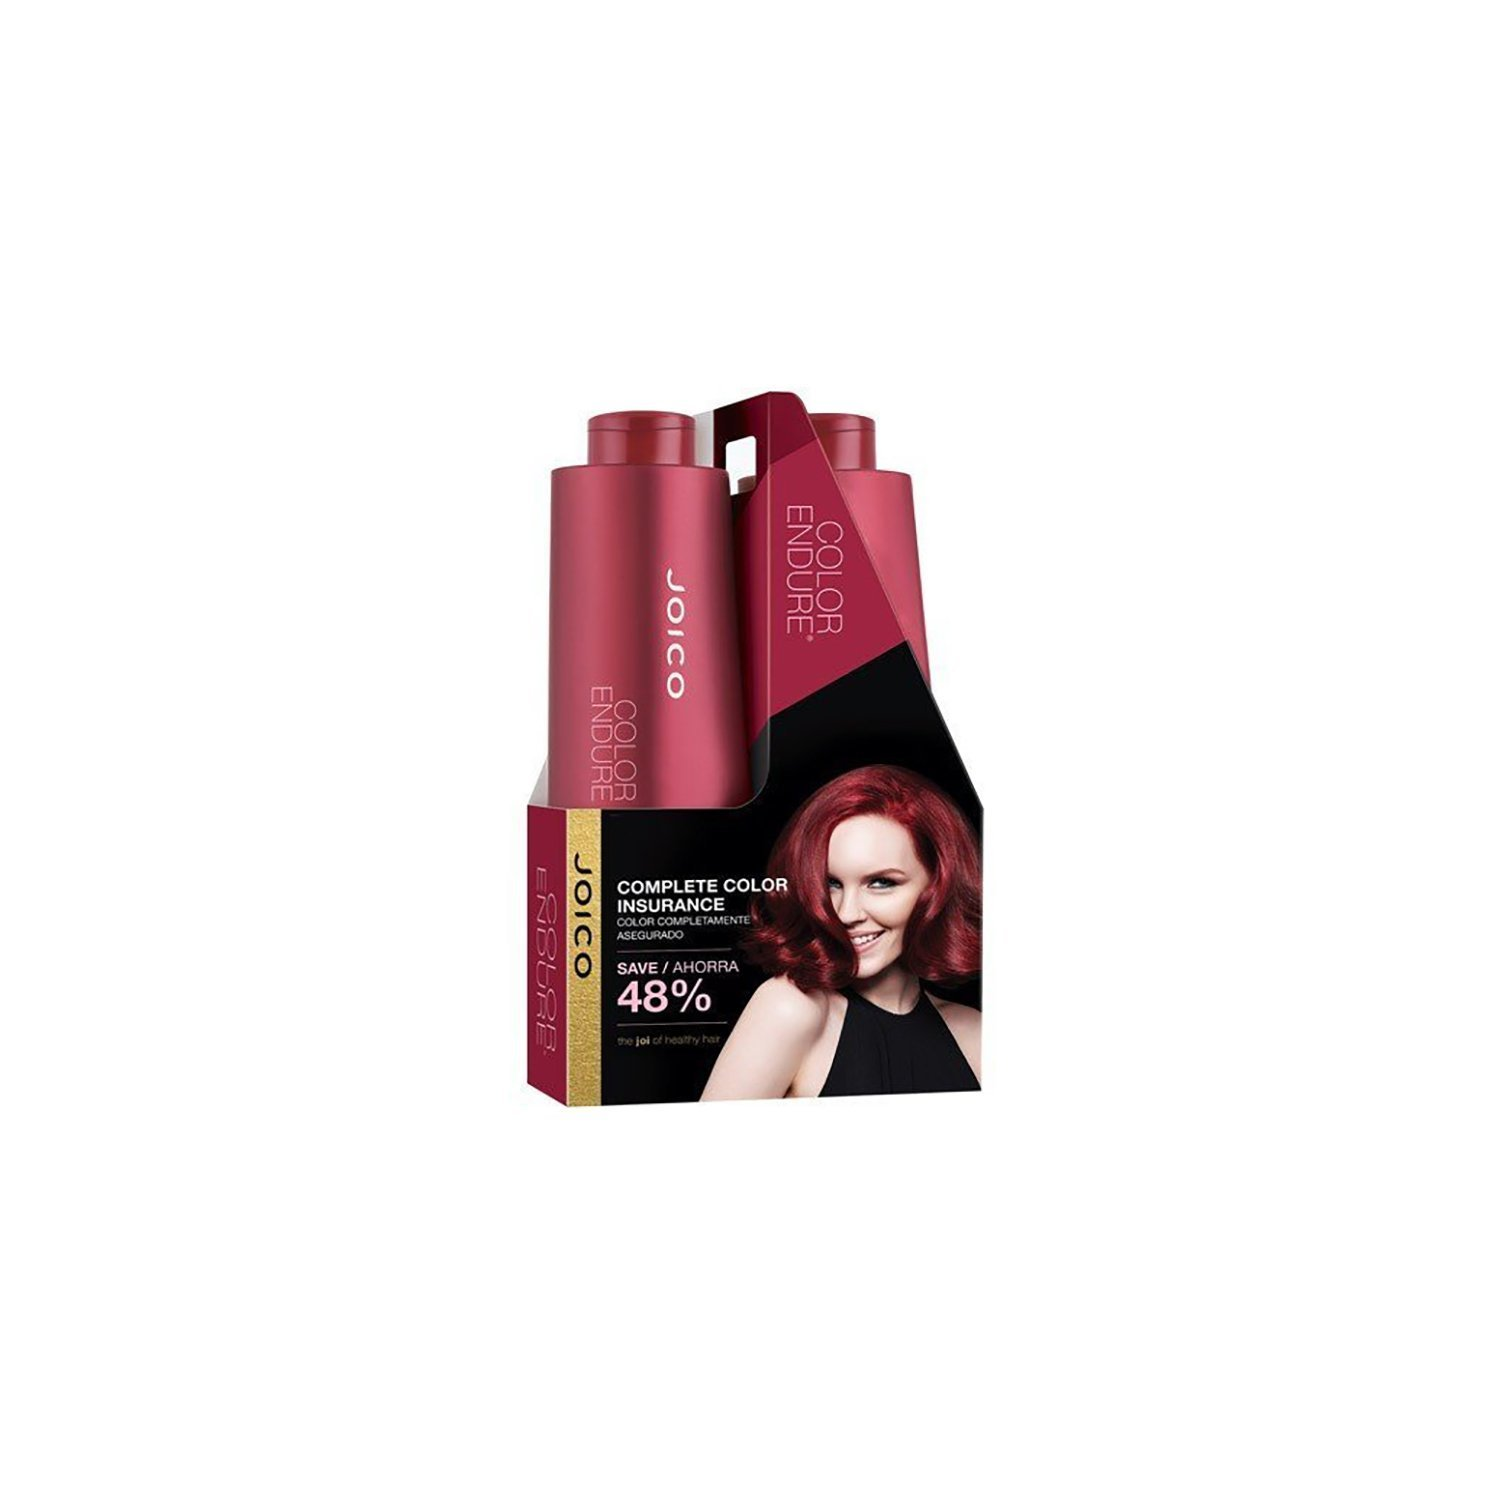 Joico Color Endure Shampoo & Conditioner Sulfate Free Duo set 33.8 oz by Joico